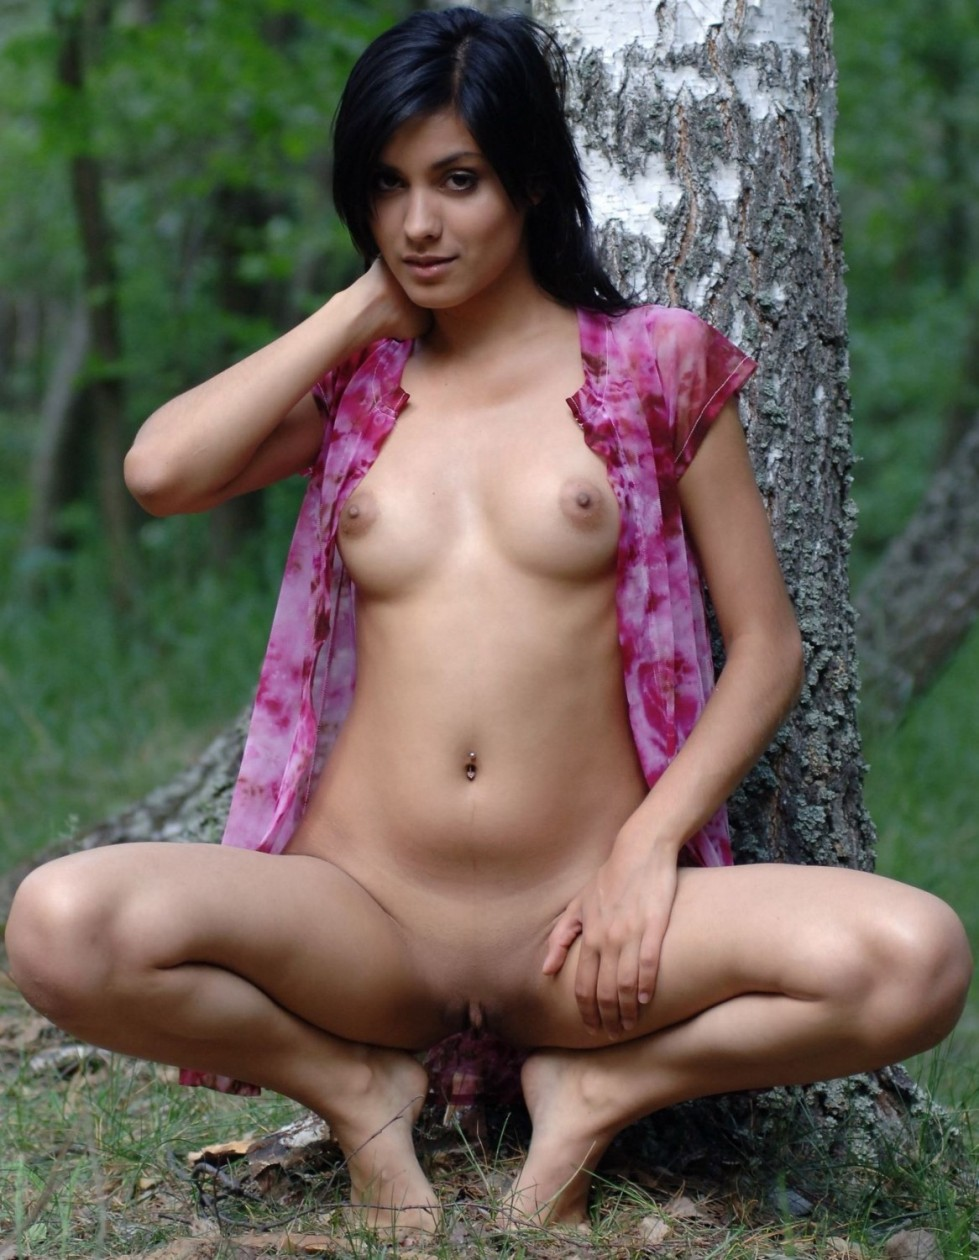 Well told. Nude pakistani girls